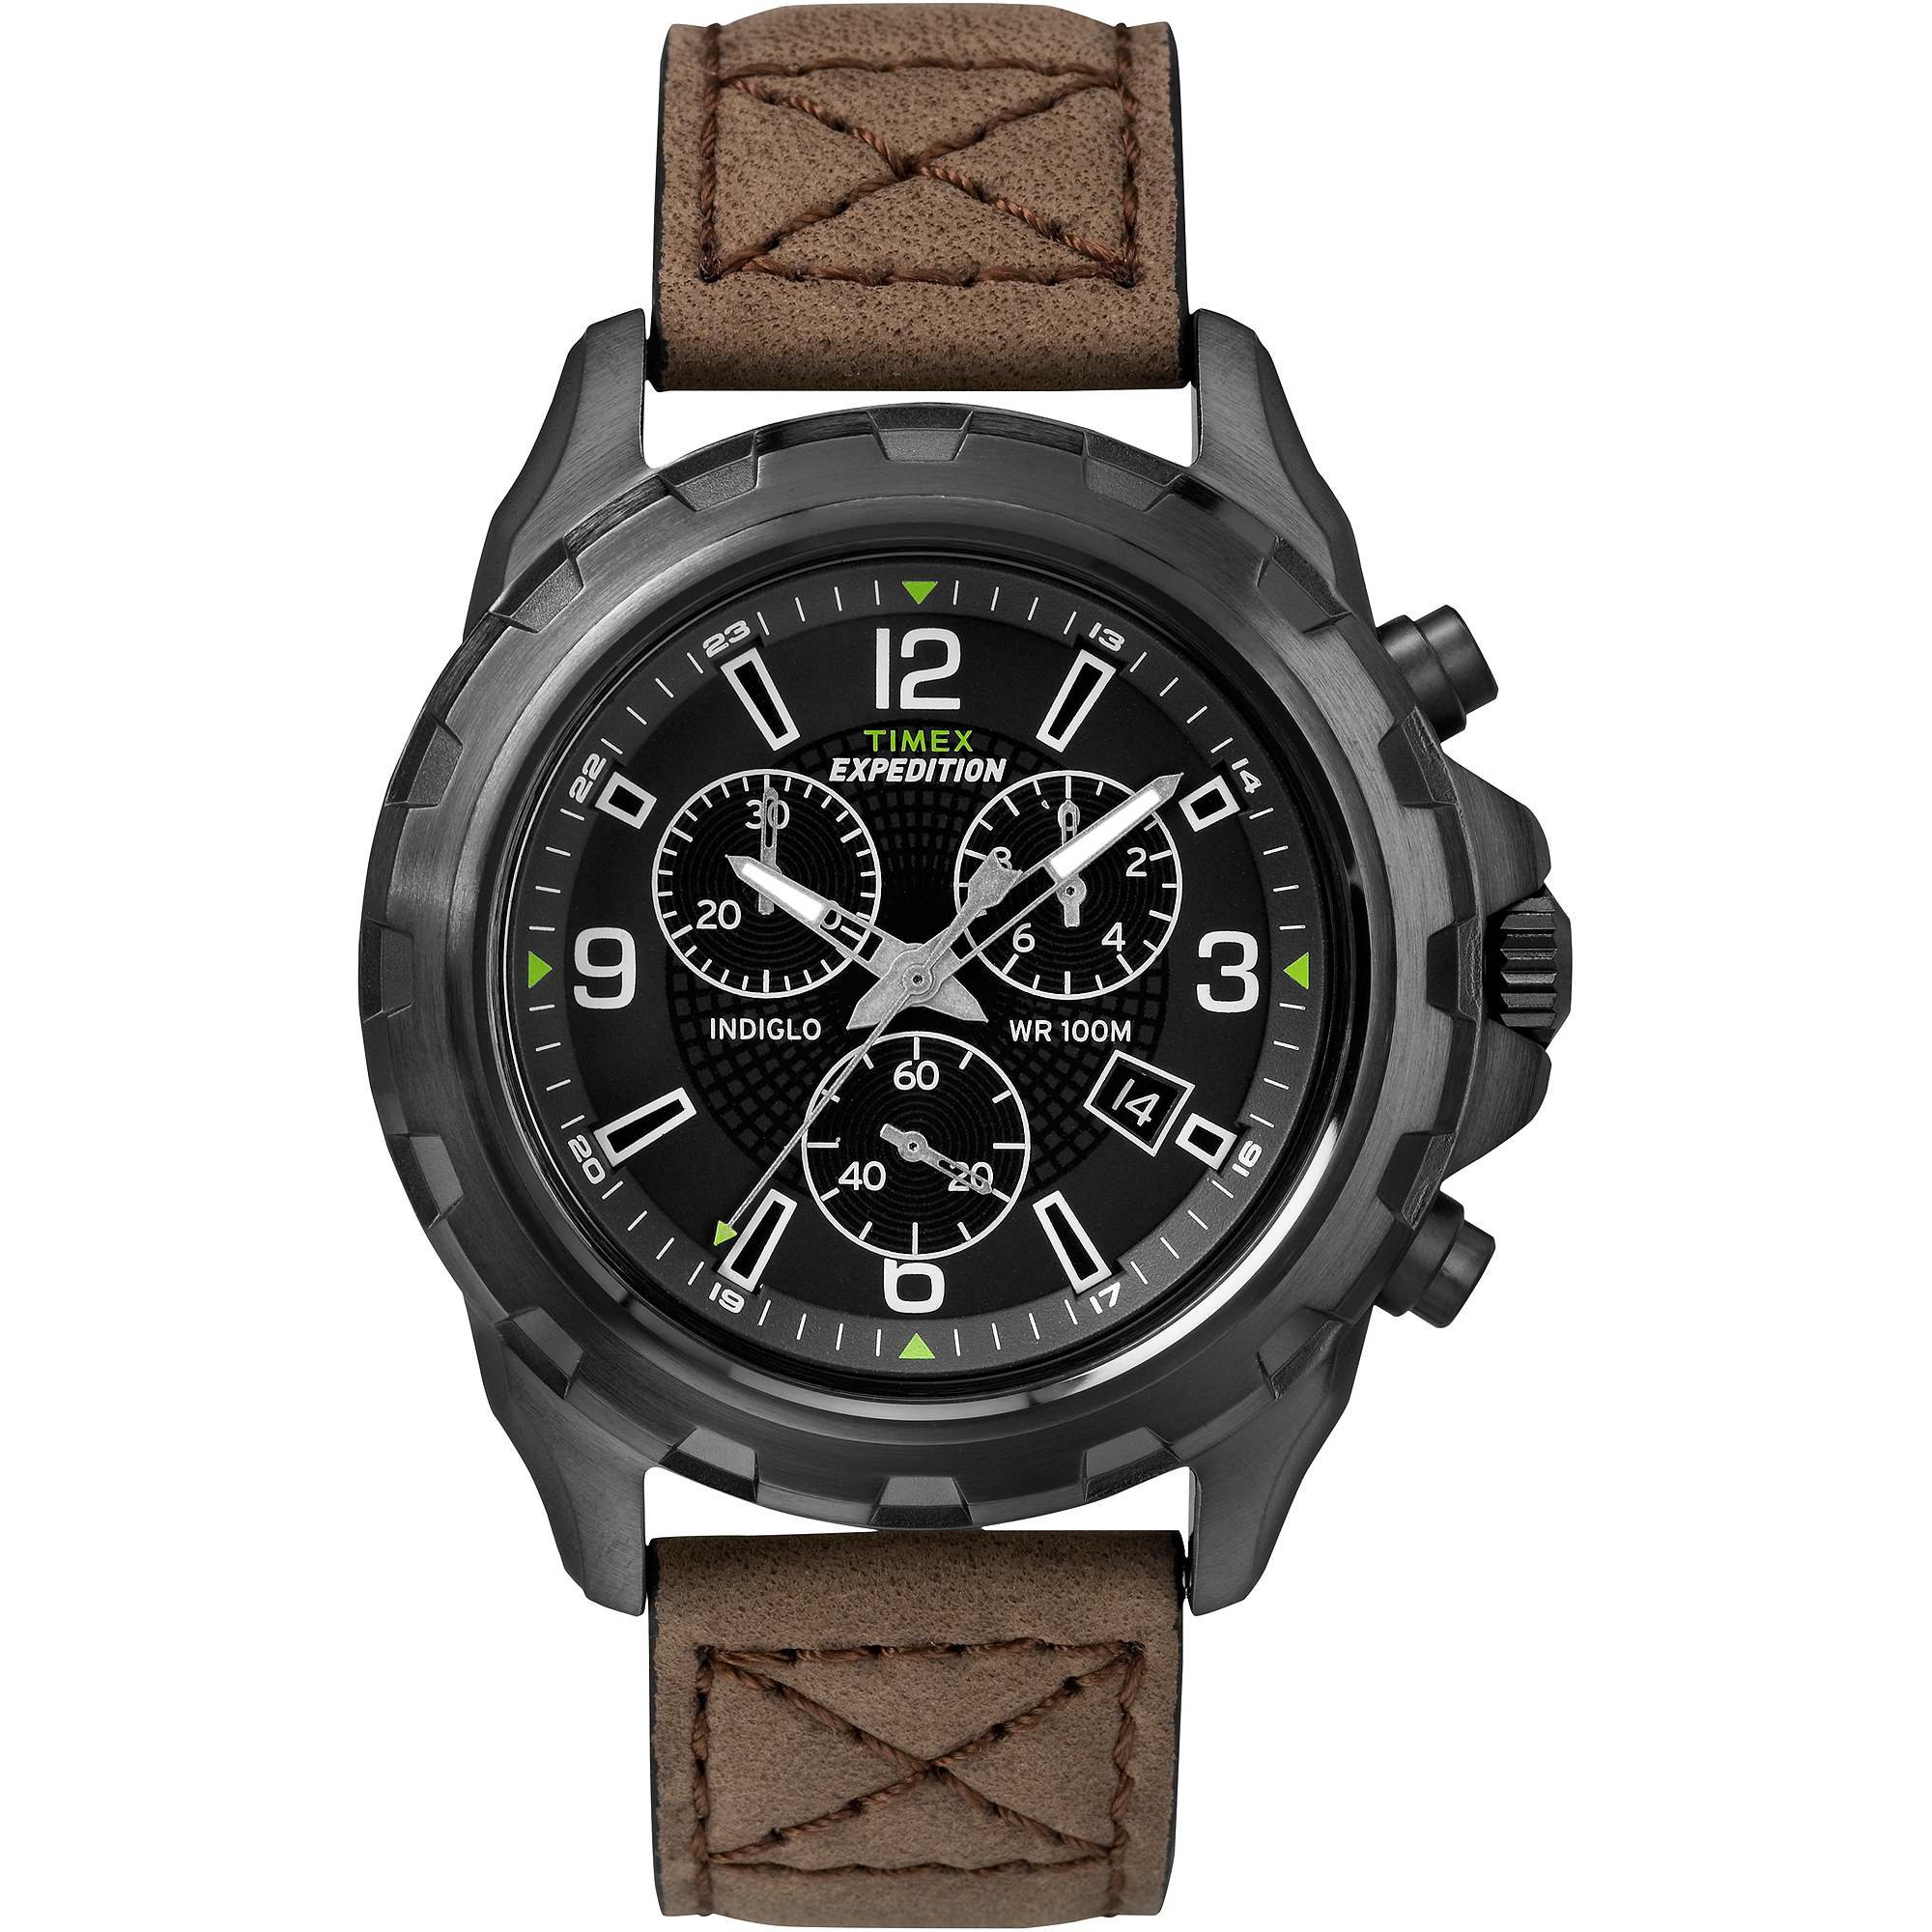 Timex Men's Expedition Rugged Chronograph Watch, Brown Leather Strap by Timex